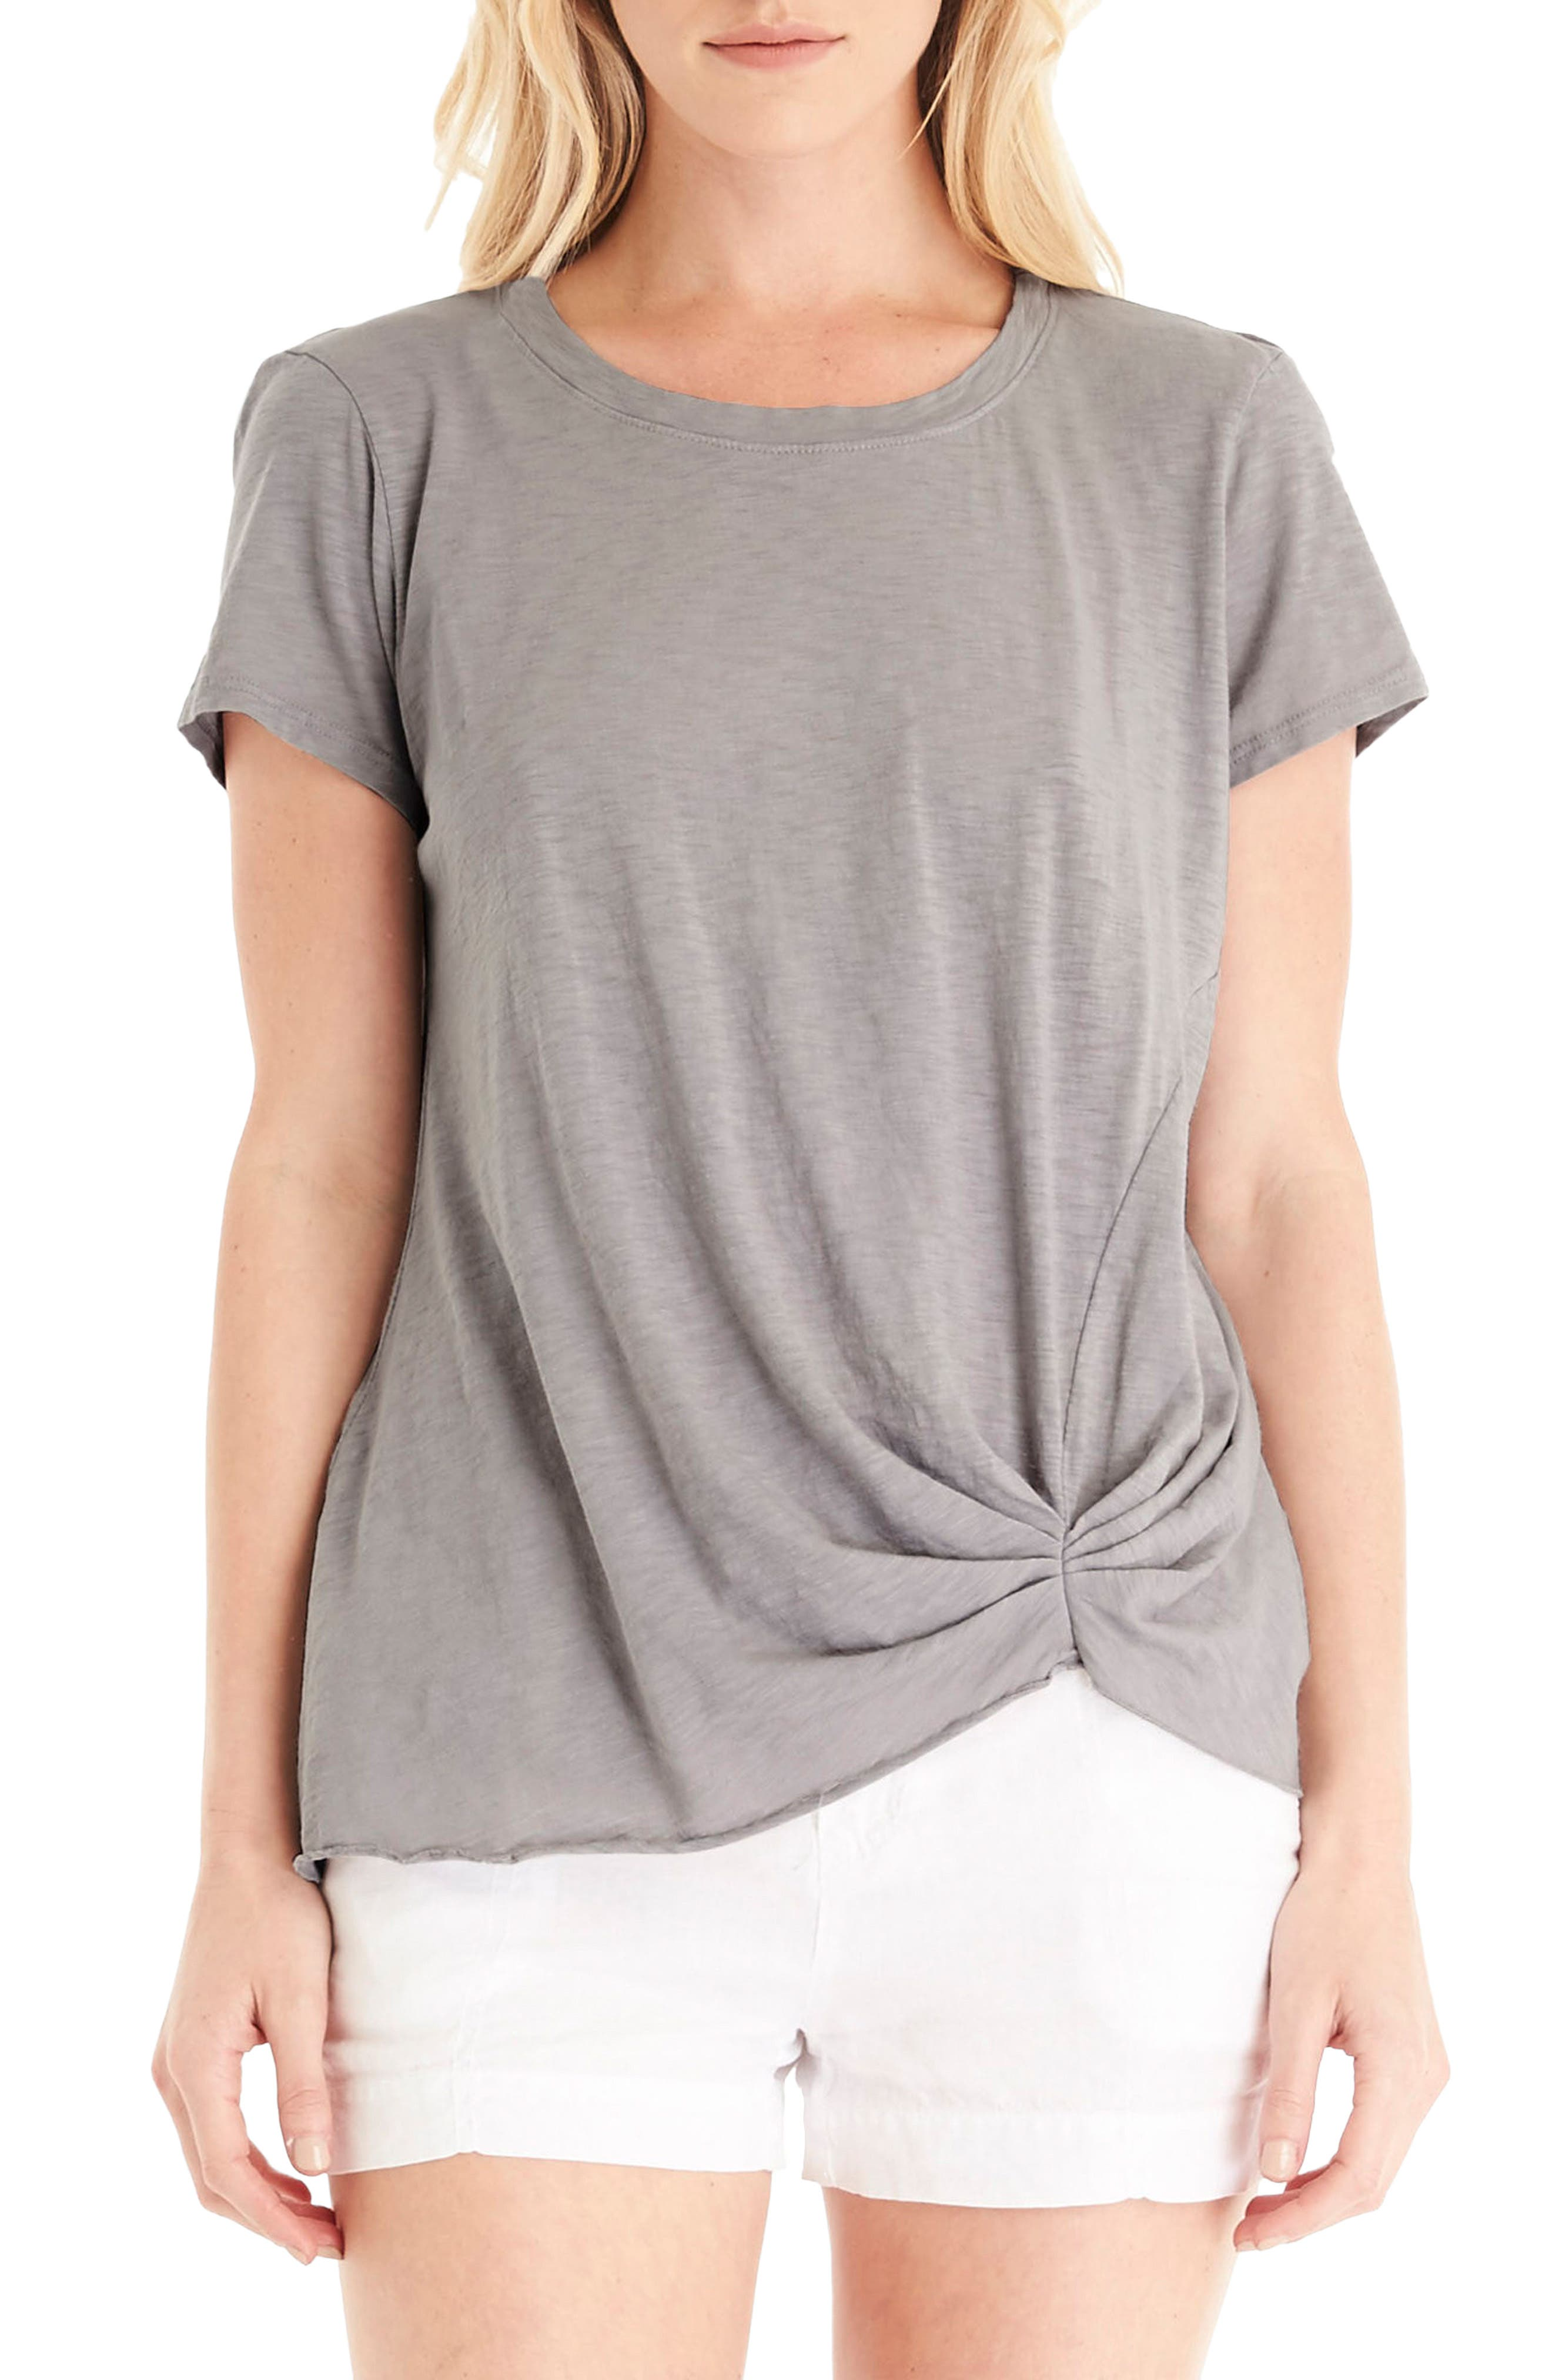 MICHAEL STARS Pleat Front Crewneck Tee